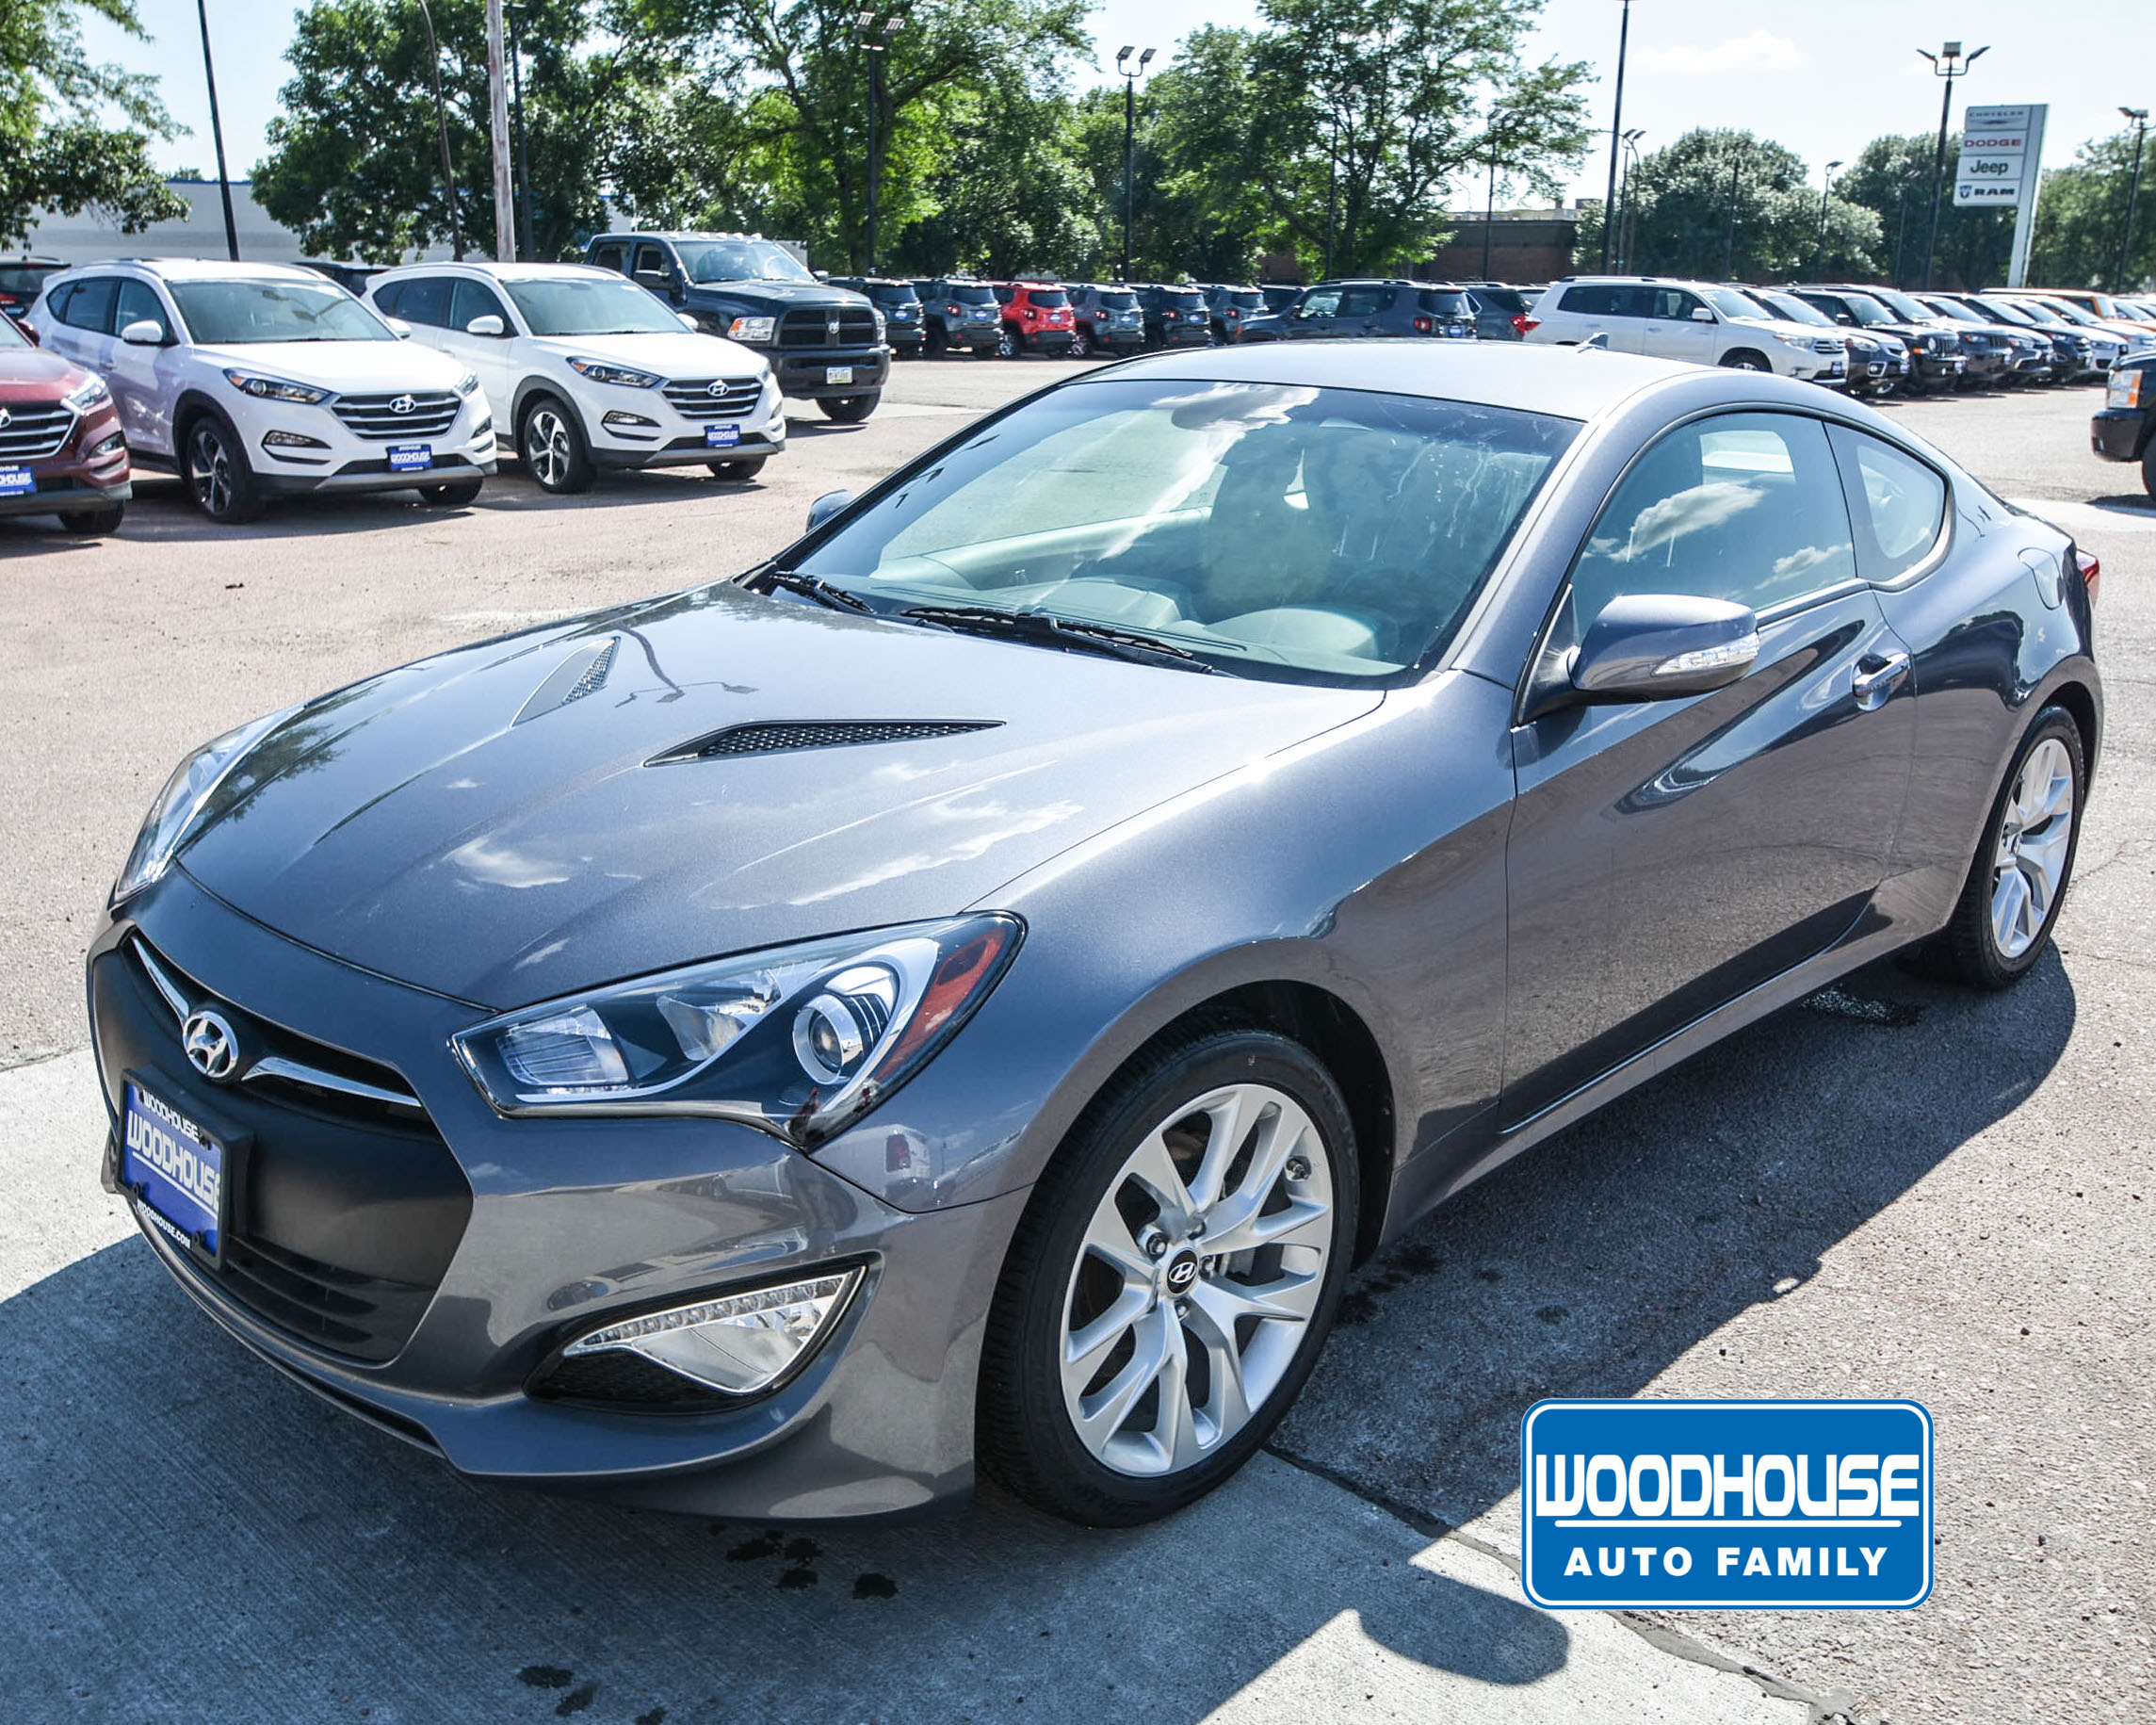 Used Hyundai Genesis for Sale Best Of Woodhouse Used 2016 Hyundai Genesis for Sale